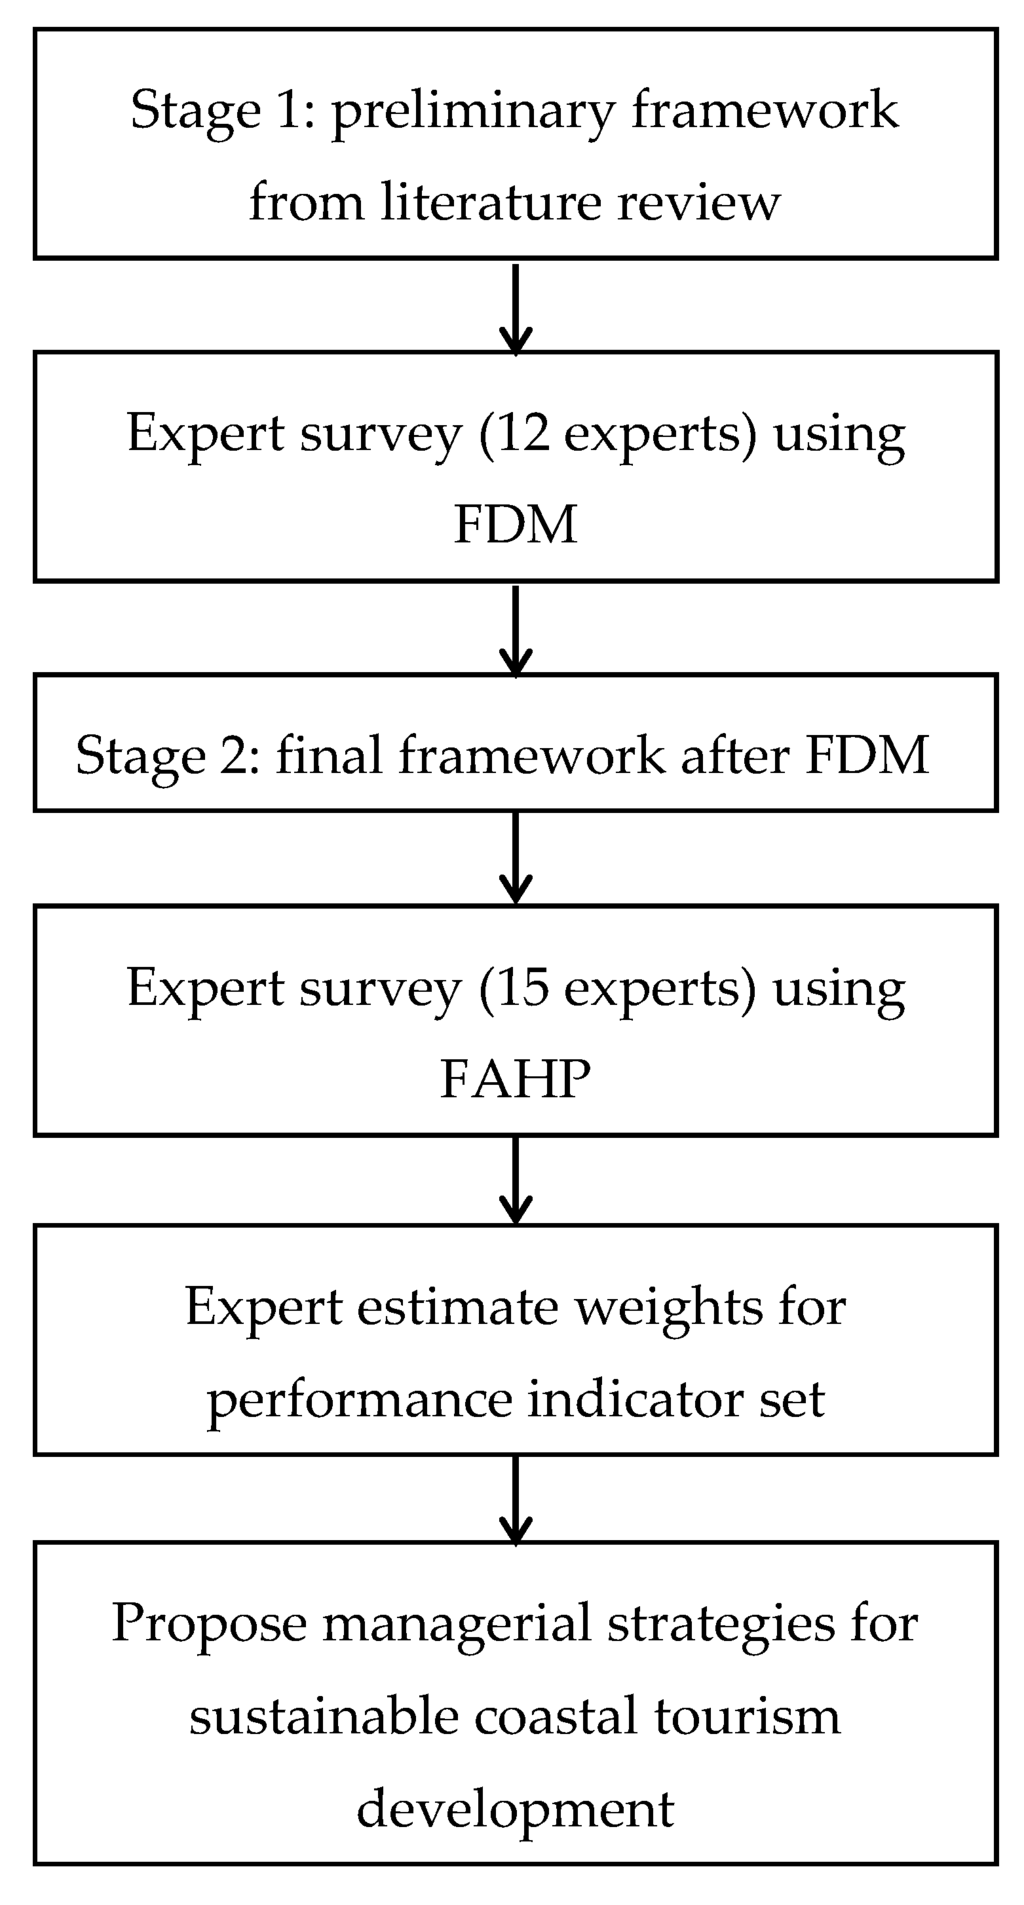 Framework for literature review